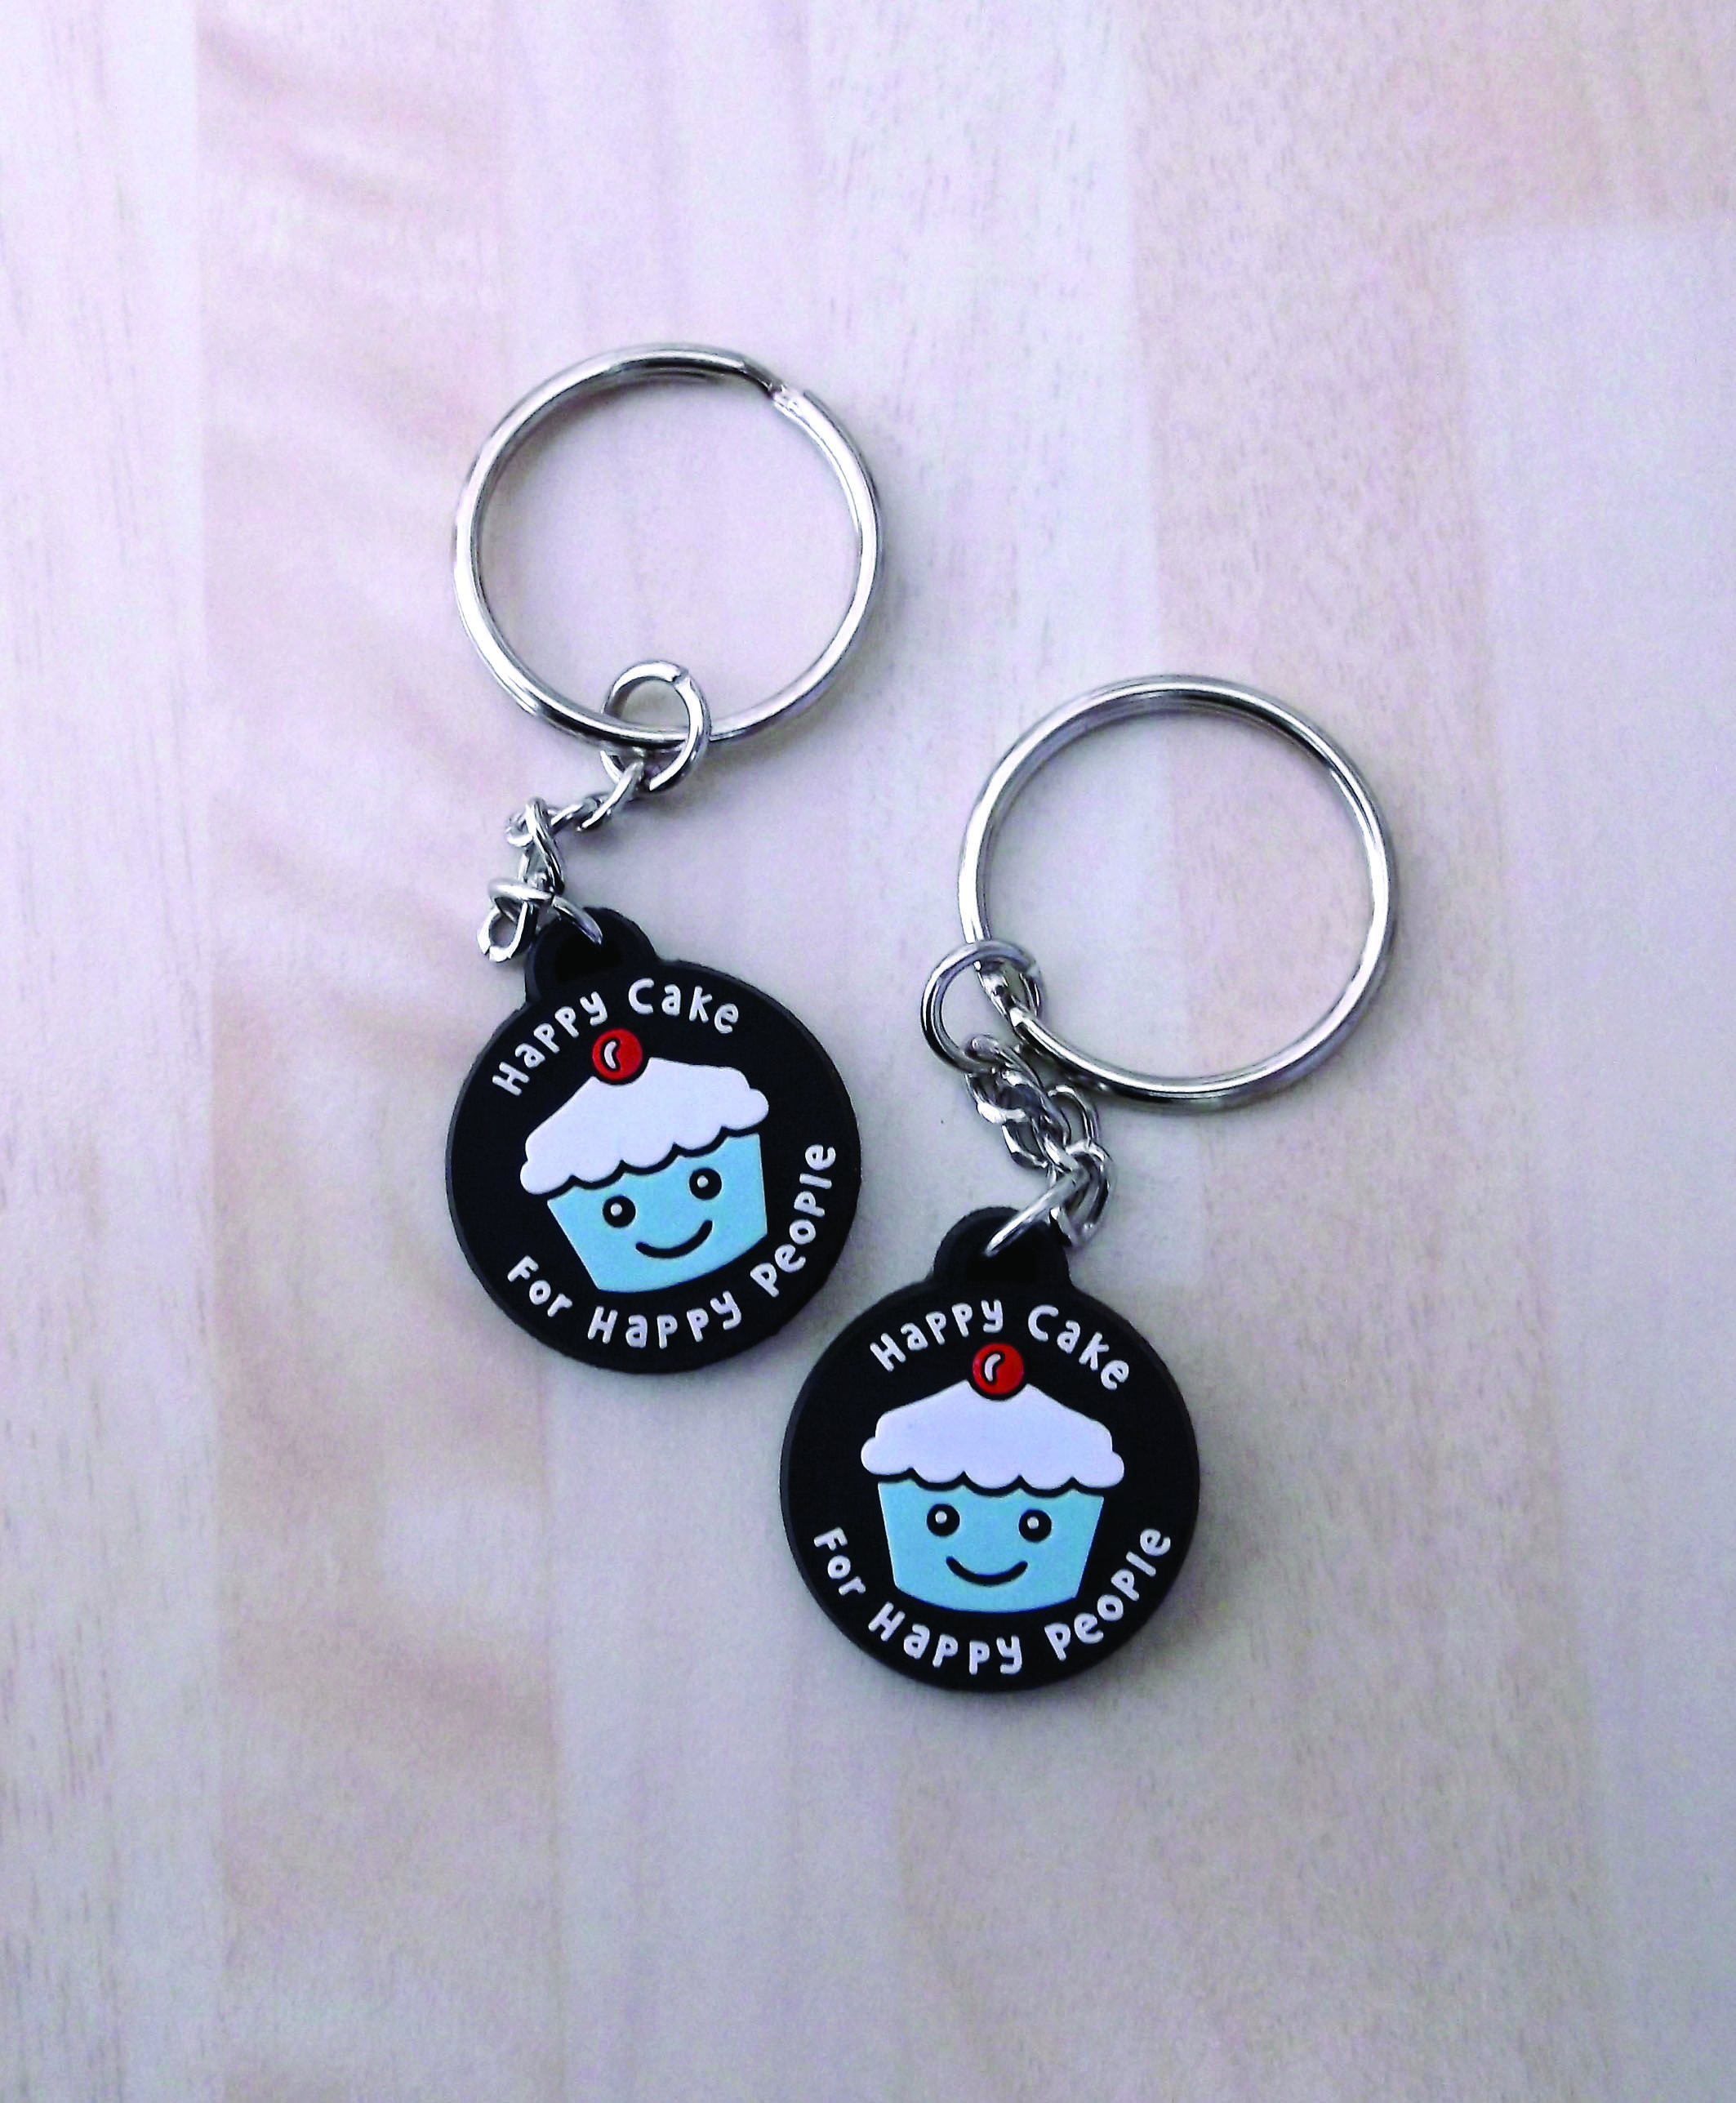 our ever so cute design only for happy people, available on a soft vinyl keyring.